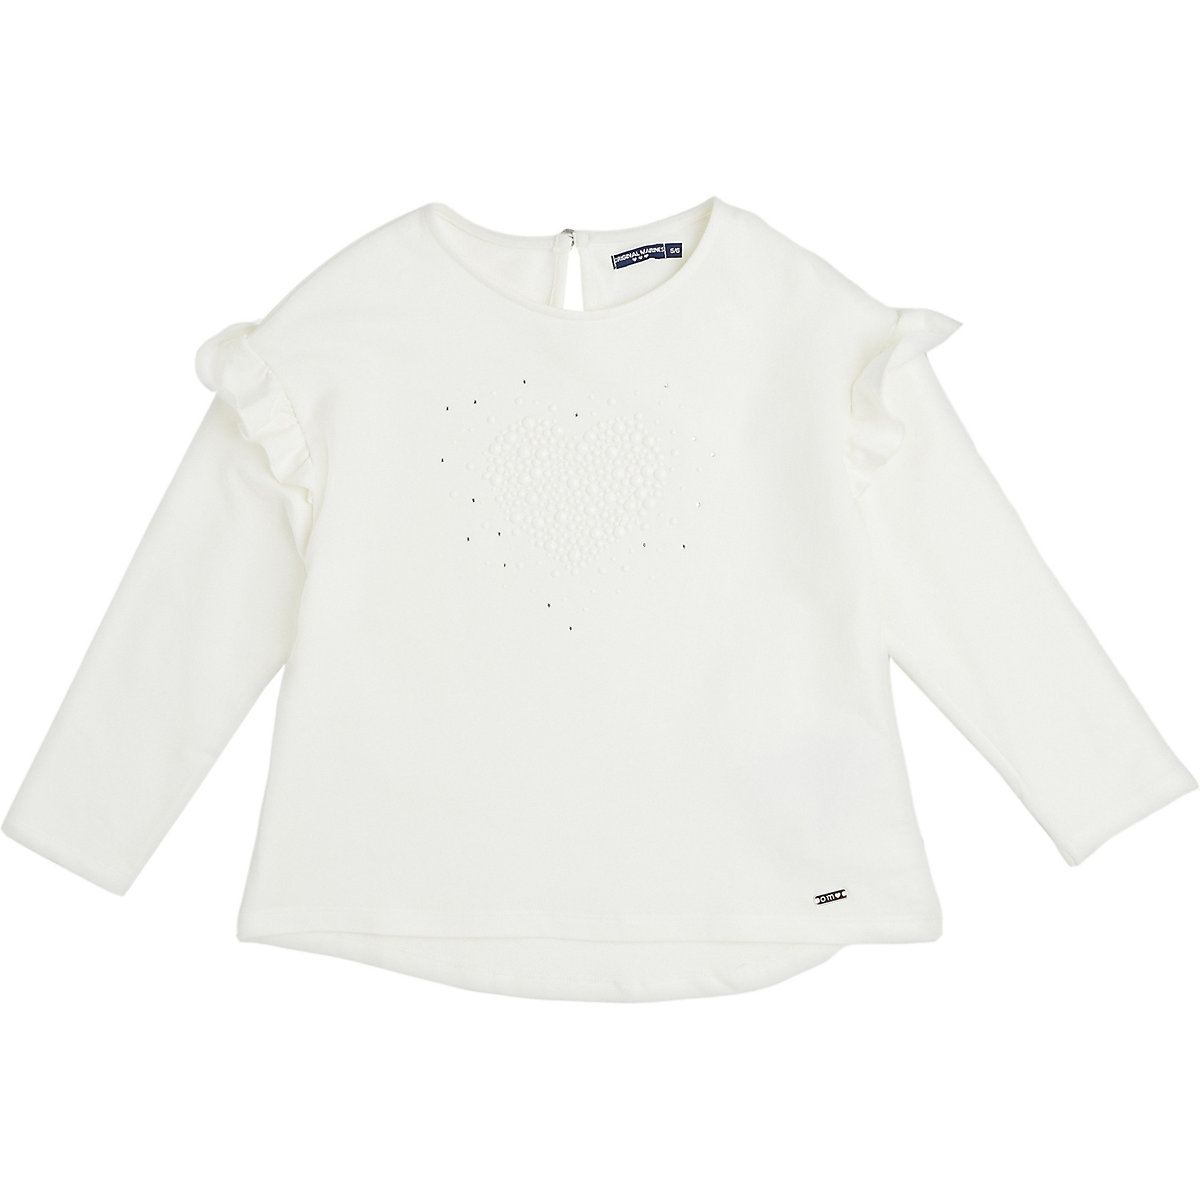 Sweaters ORIGINAL MARINES 10824385 sweatshirt hoodies for kids cardigan clothes for girls and boys zip up jaquard sweater cardigan